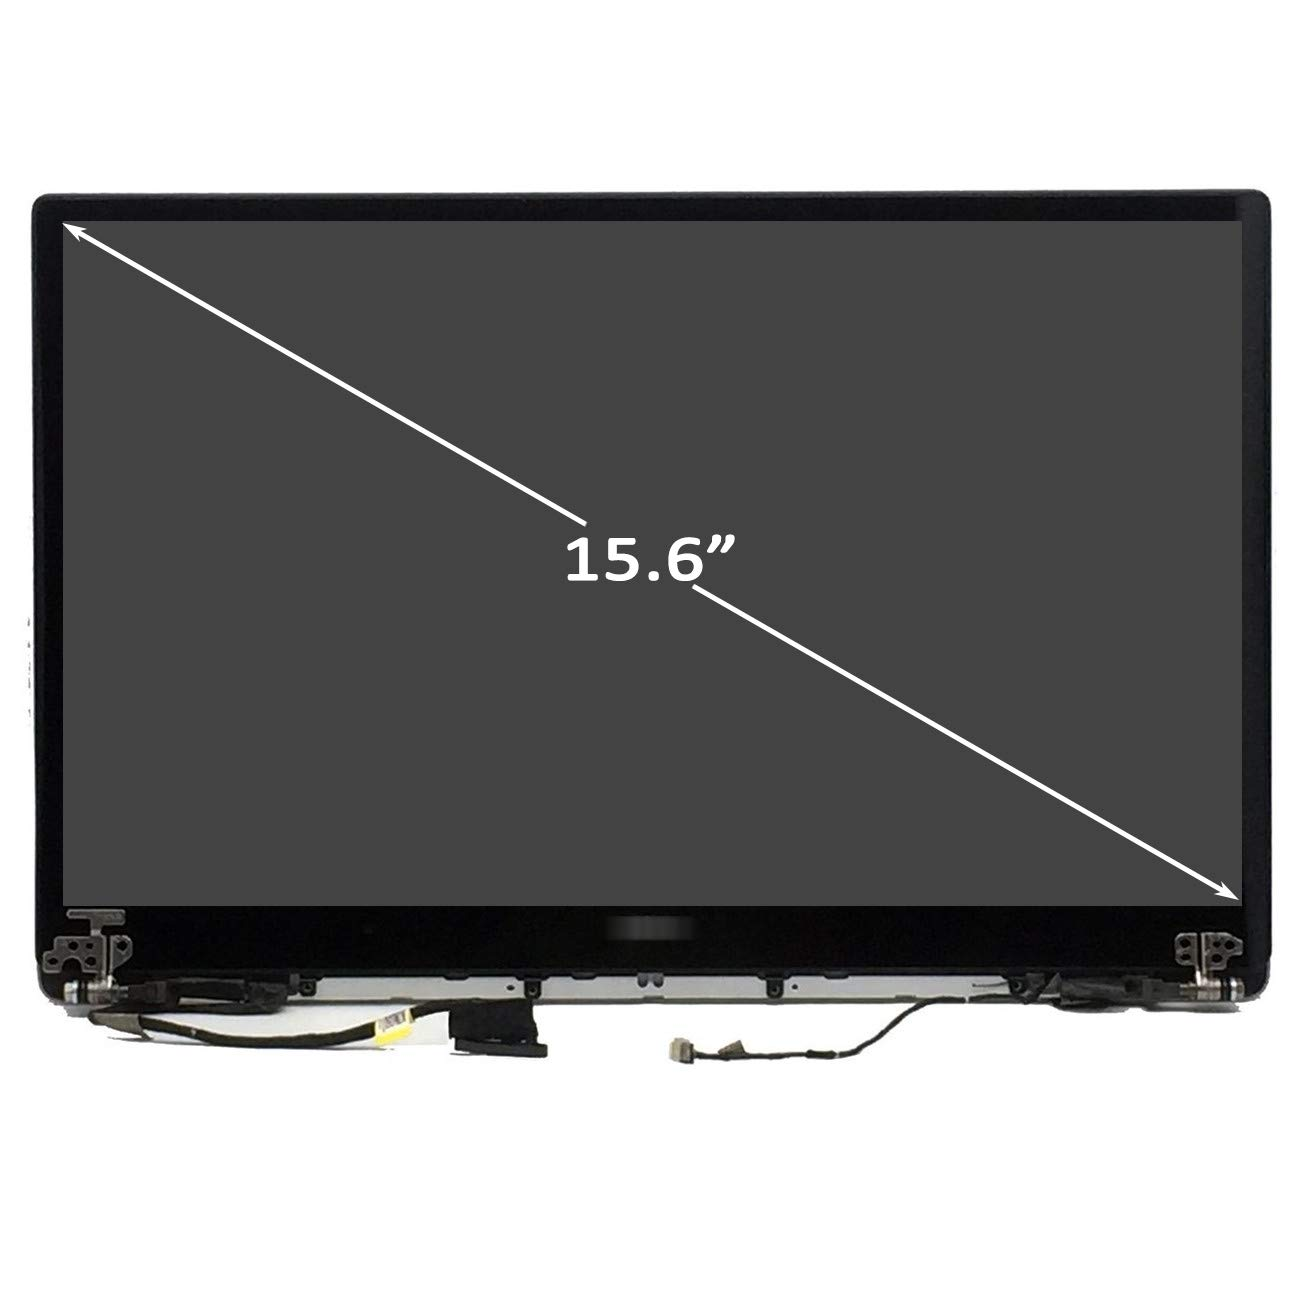 FirstLCD Touch ISP LCD Screen Replacement HHTKR N98CY for Dell XPS 15 9550 9560 Precision 5510 5520 Digitizer Glass LED Display Panel Assembly 15.6'' UHD 4K 3840x2160 by FirstLCD (Image #1)